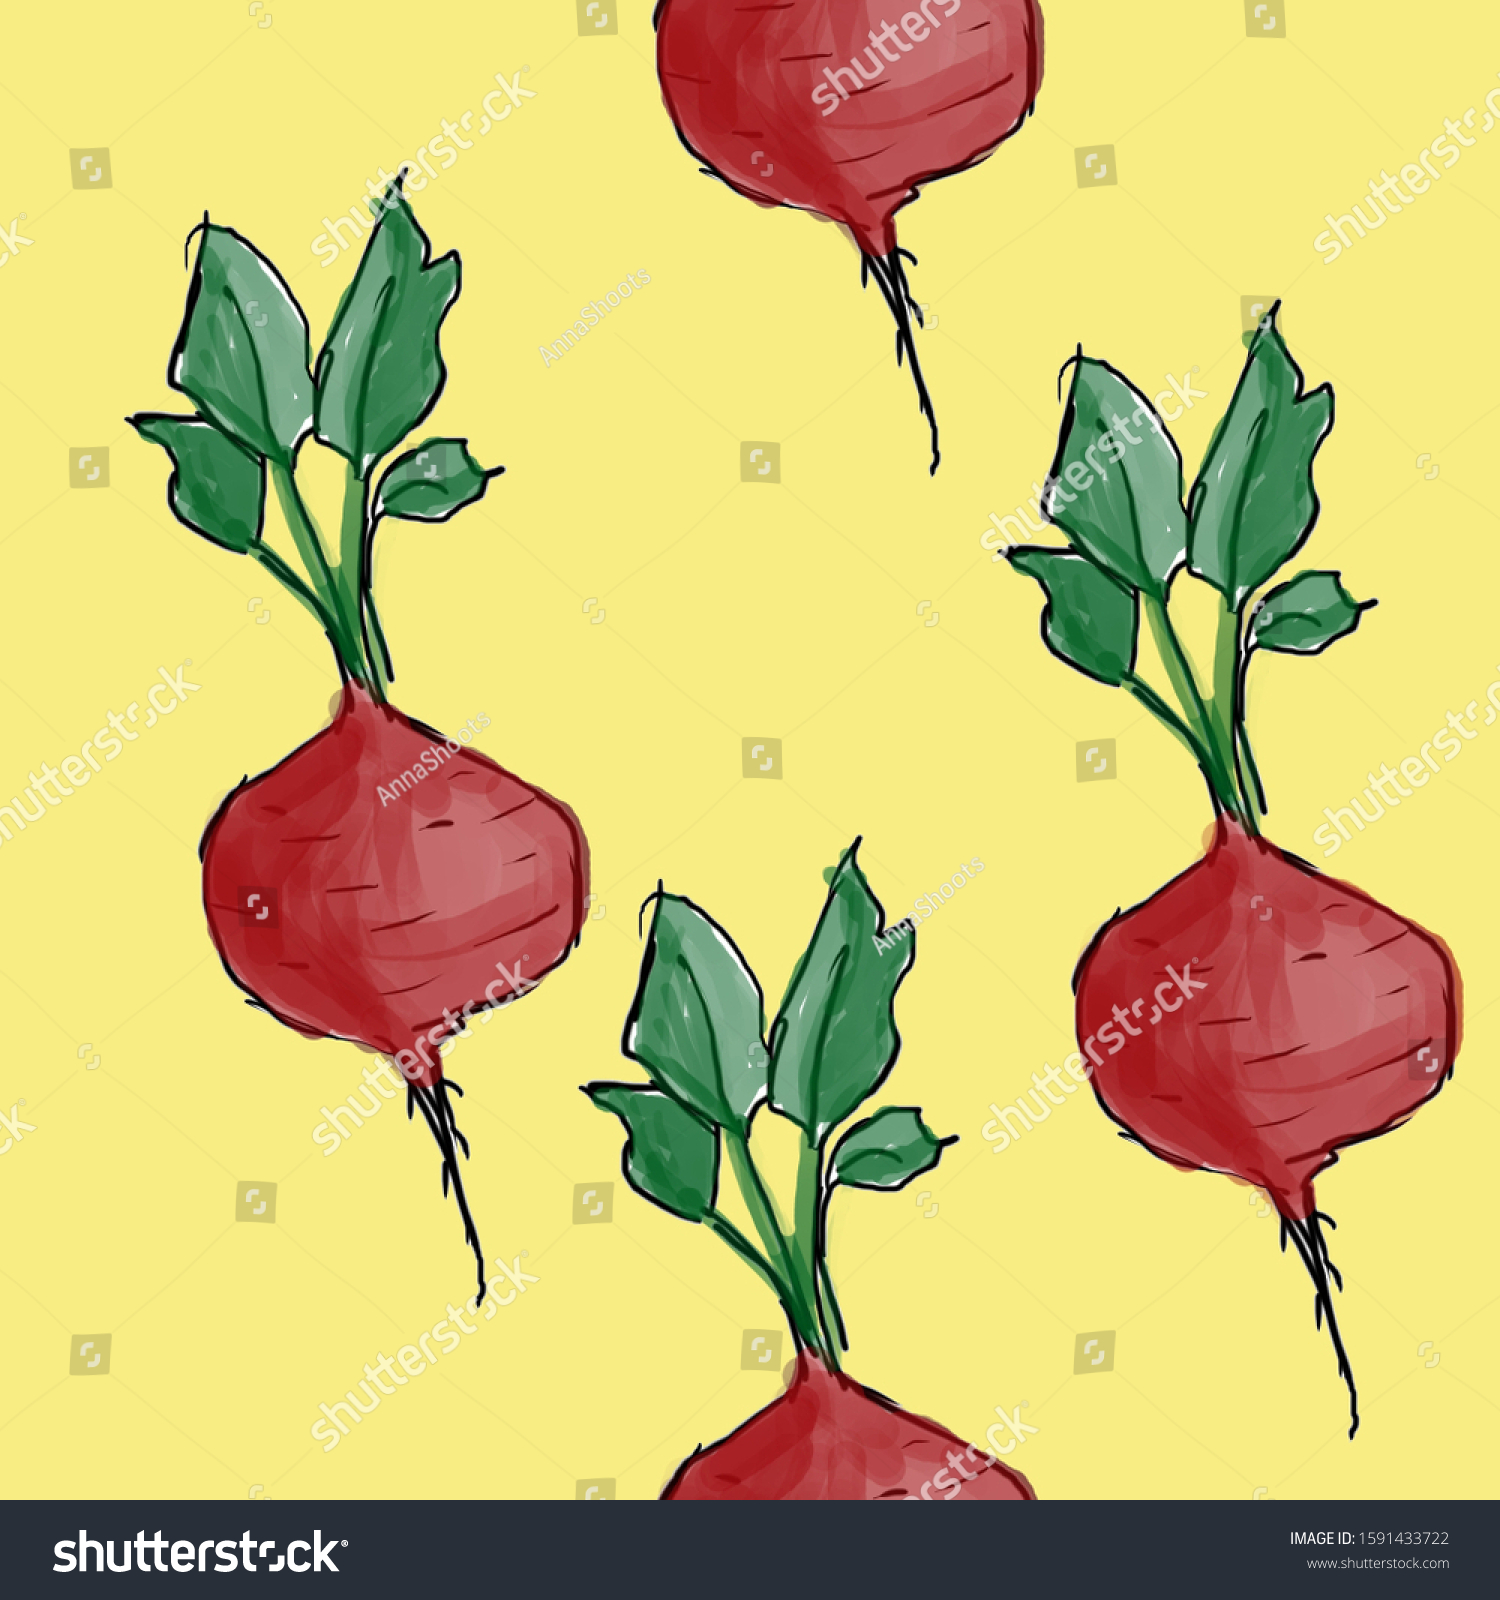 stock-photo-seamless-pattern-beets-delic